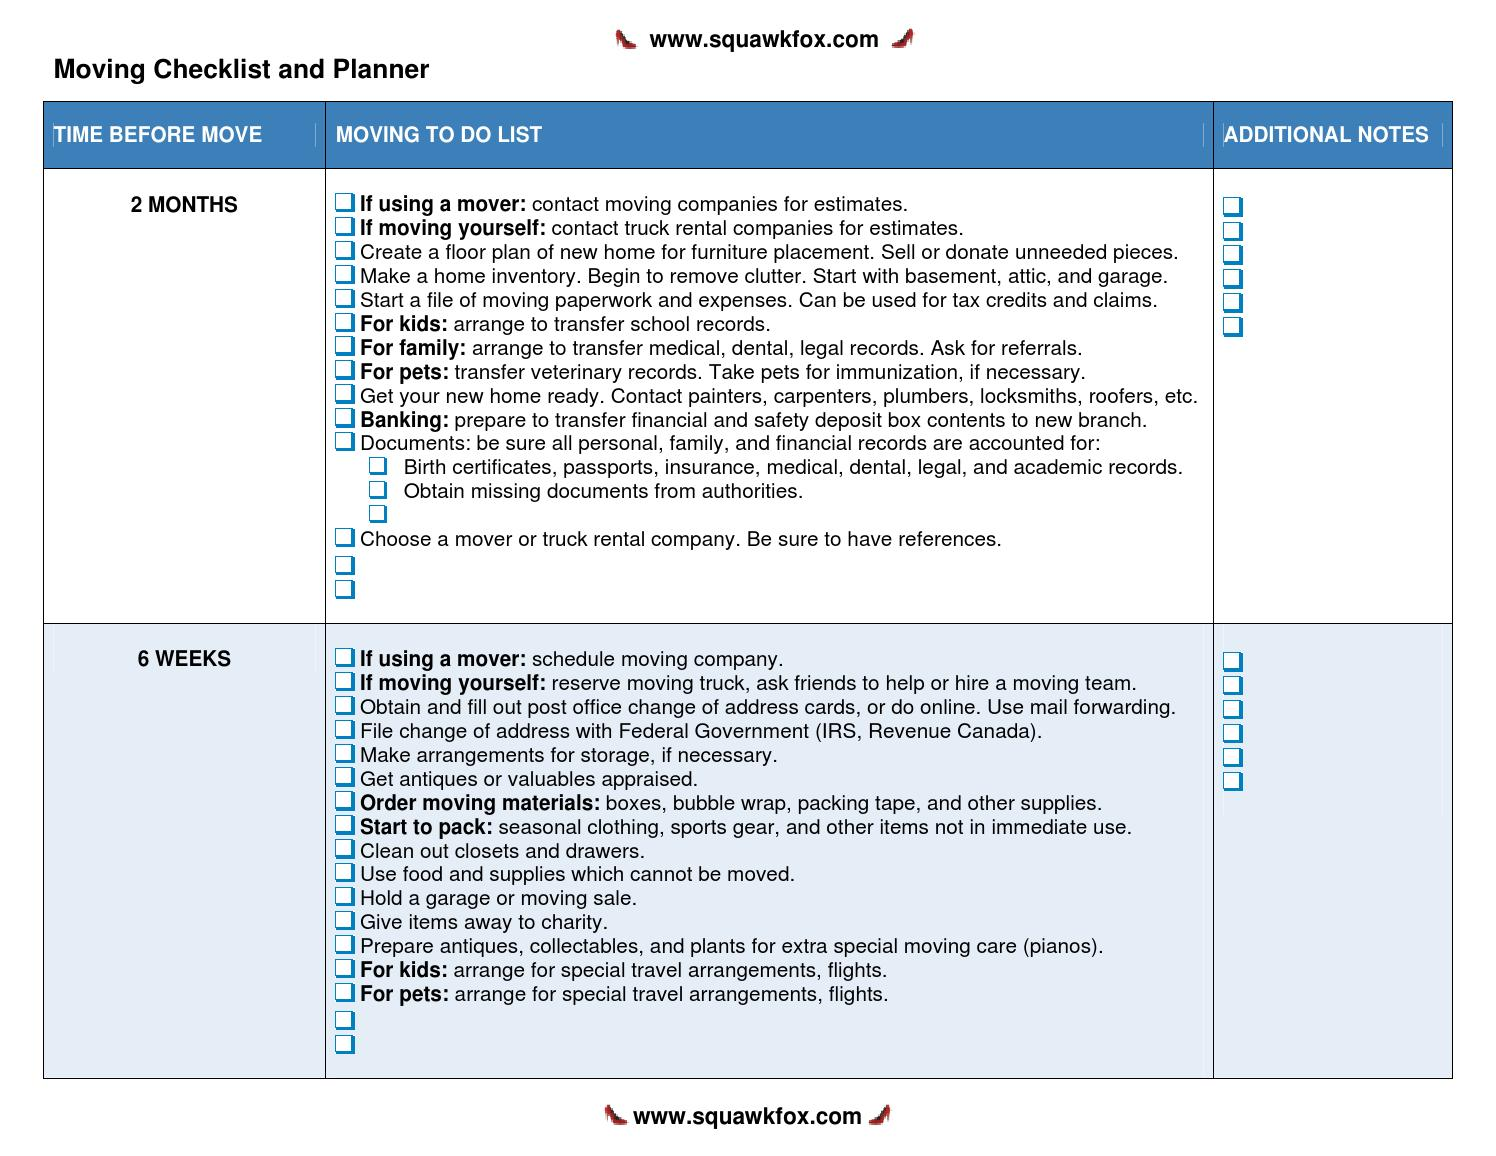 photograph relating to Printable Moving Checklist and Planner named Printable going list planner by way of Vibhu Gauba - issuu